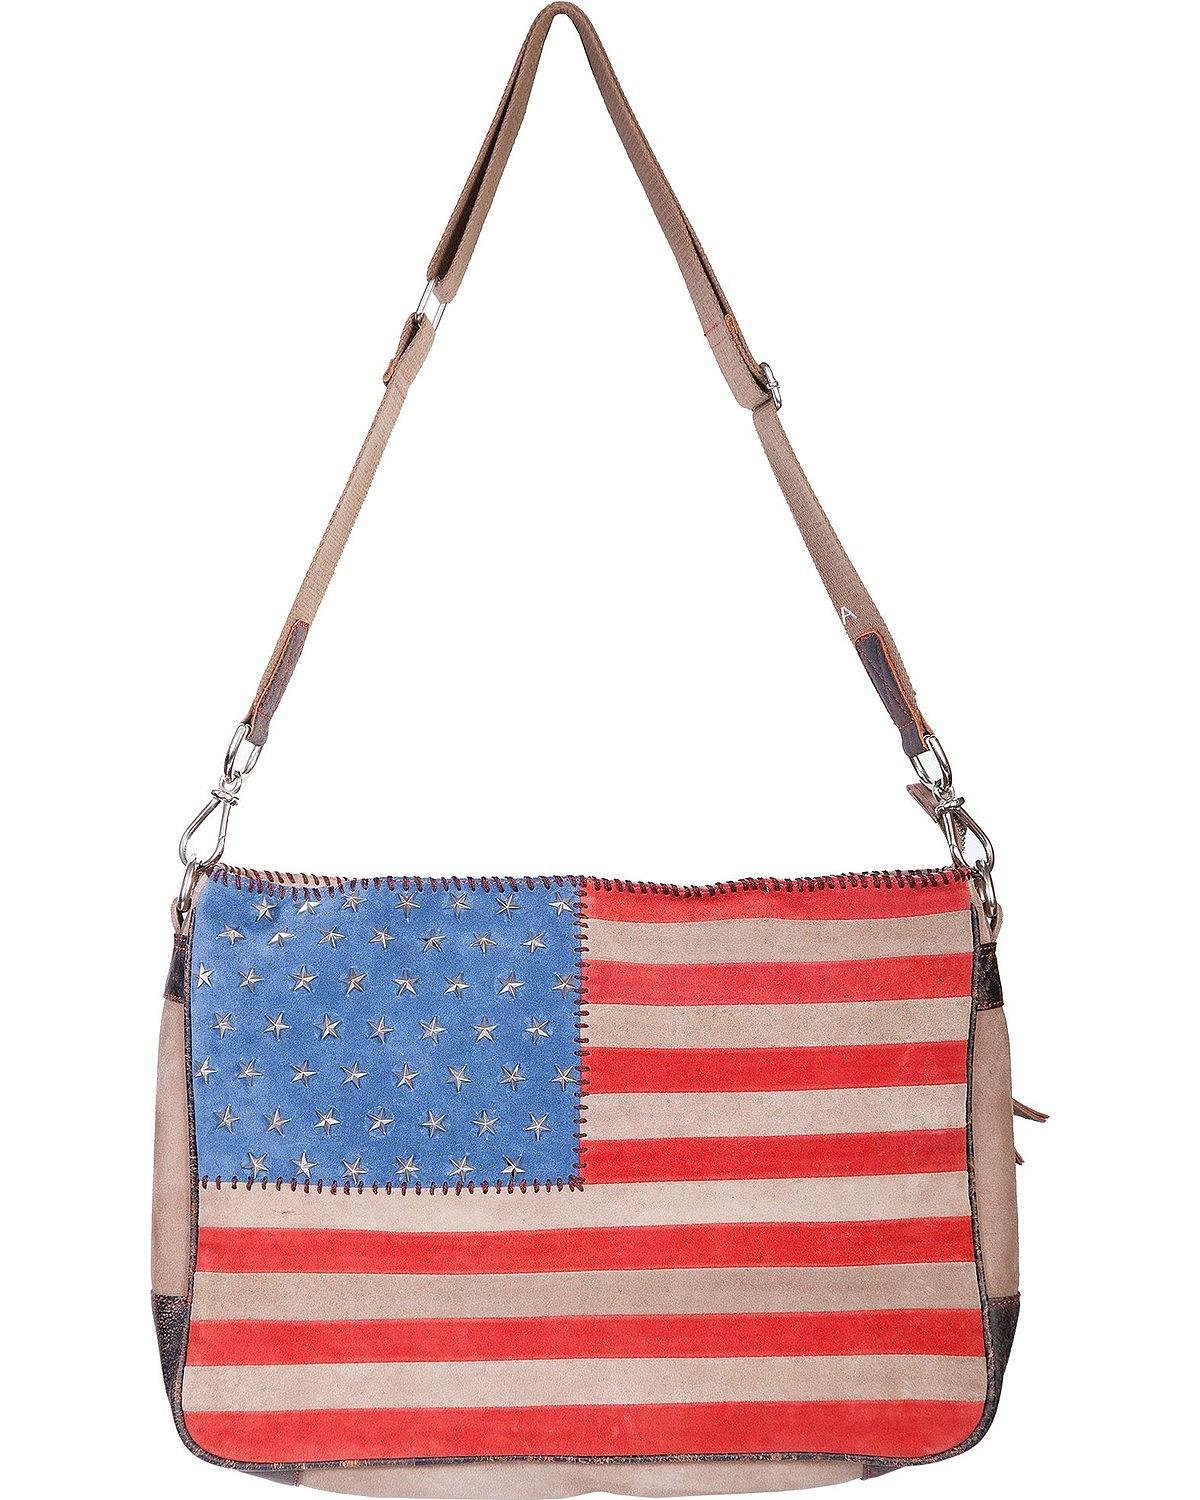 Scully Women's Studded Patriotic Crossbody Bag Patriotic One Size